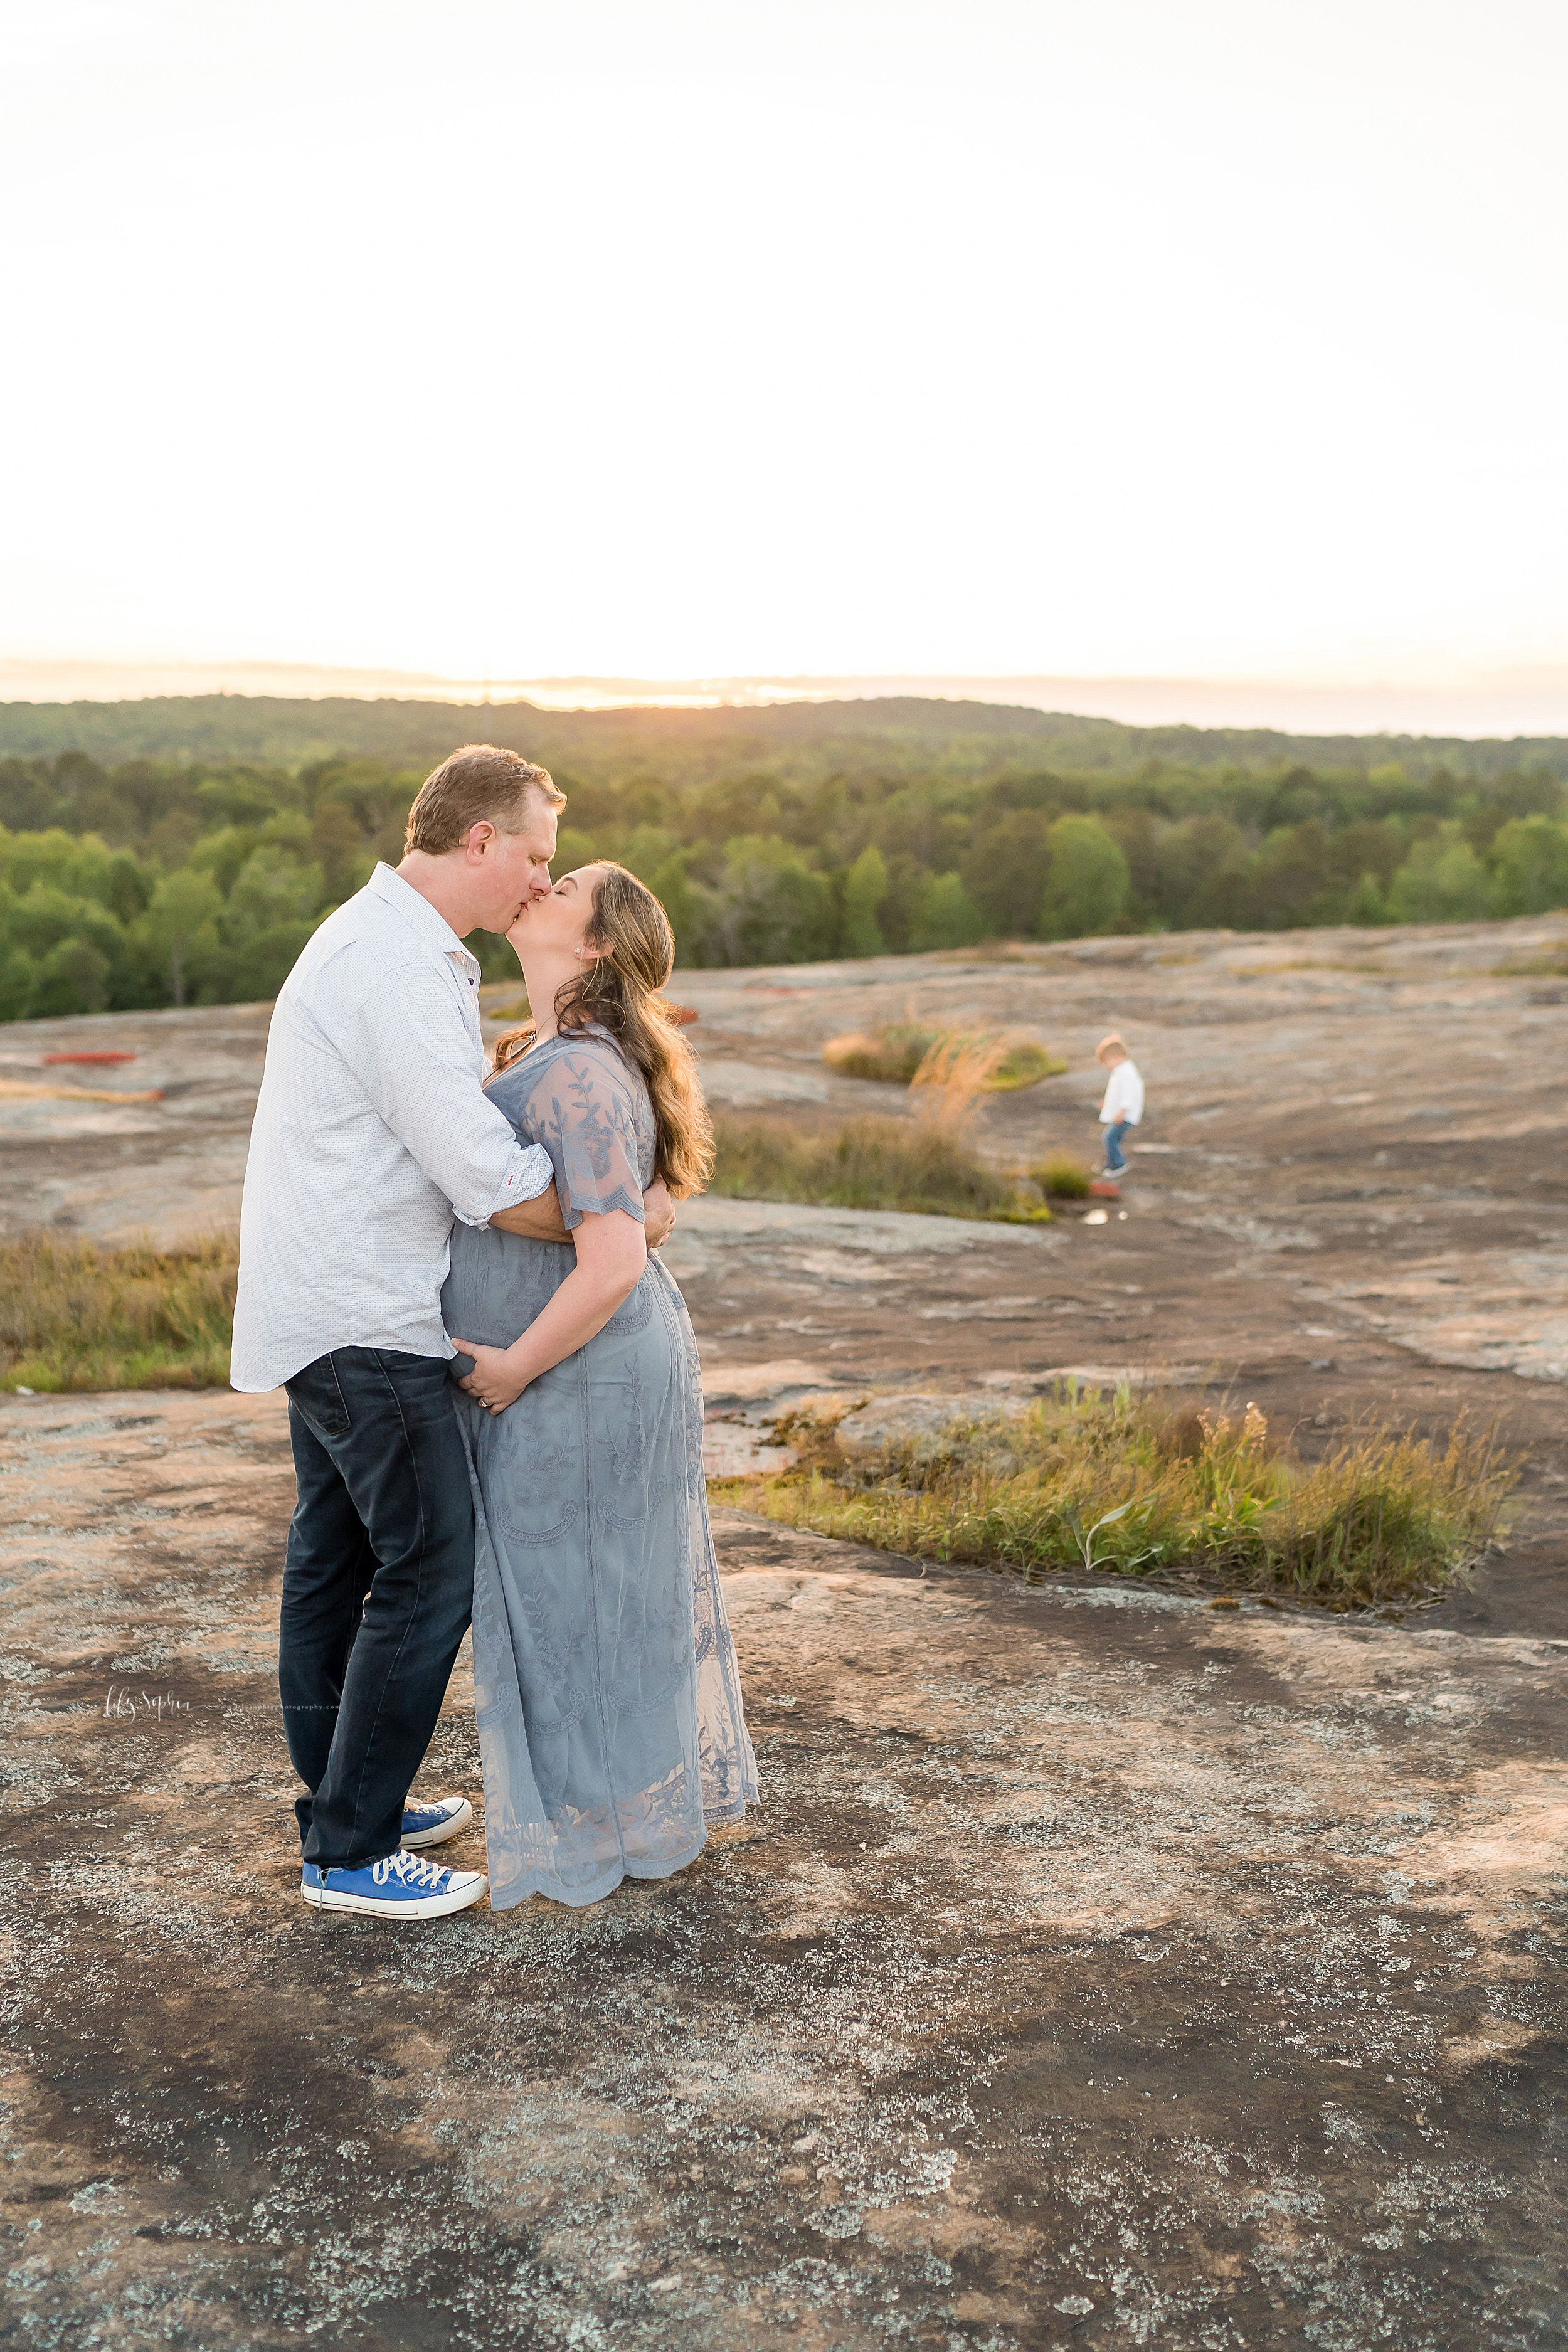 The love between a husband and pregnant wife is captured as they embrace and kiss on an Atlanta mountaintop with their toddler son playing in the background.